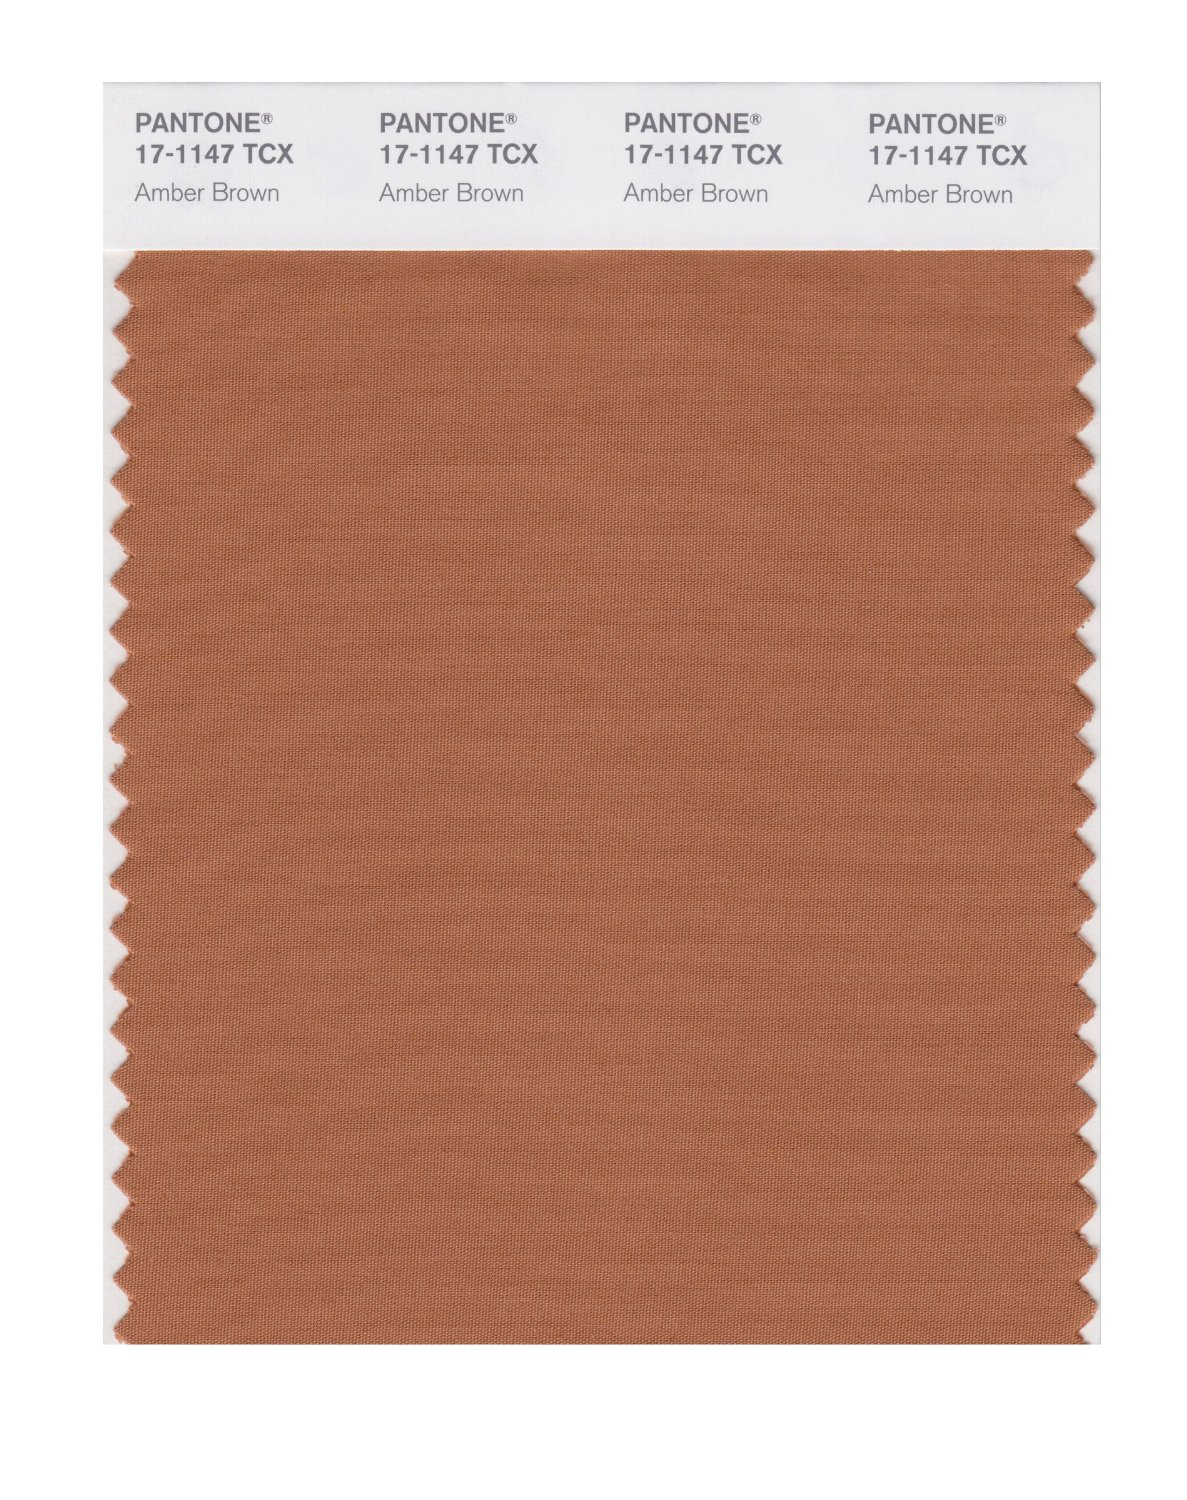 Pantone Smart Swatch 17-1147 Amber Brown